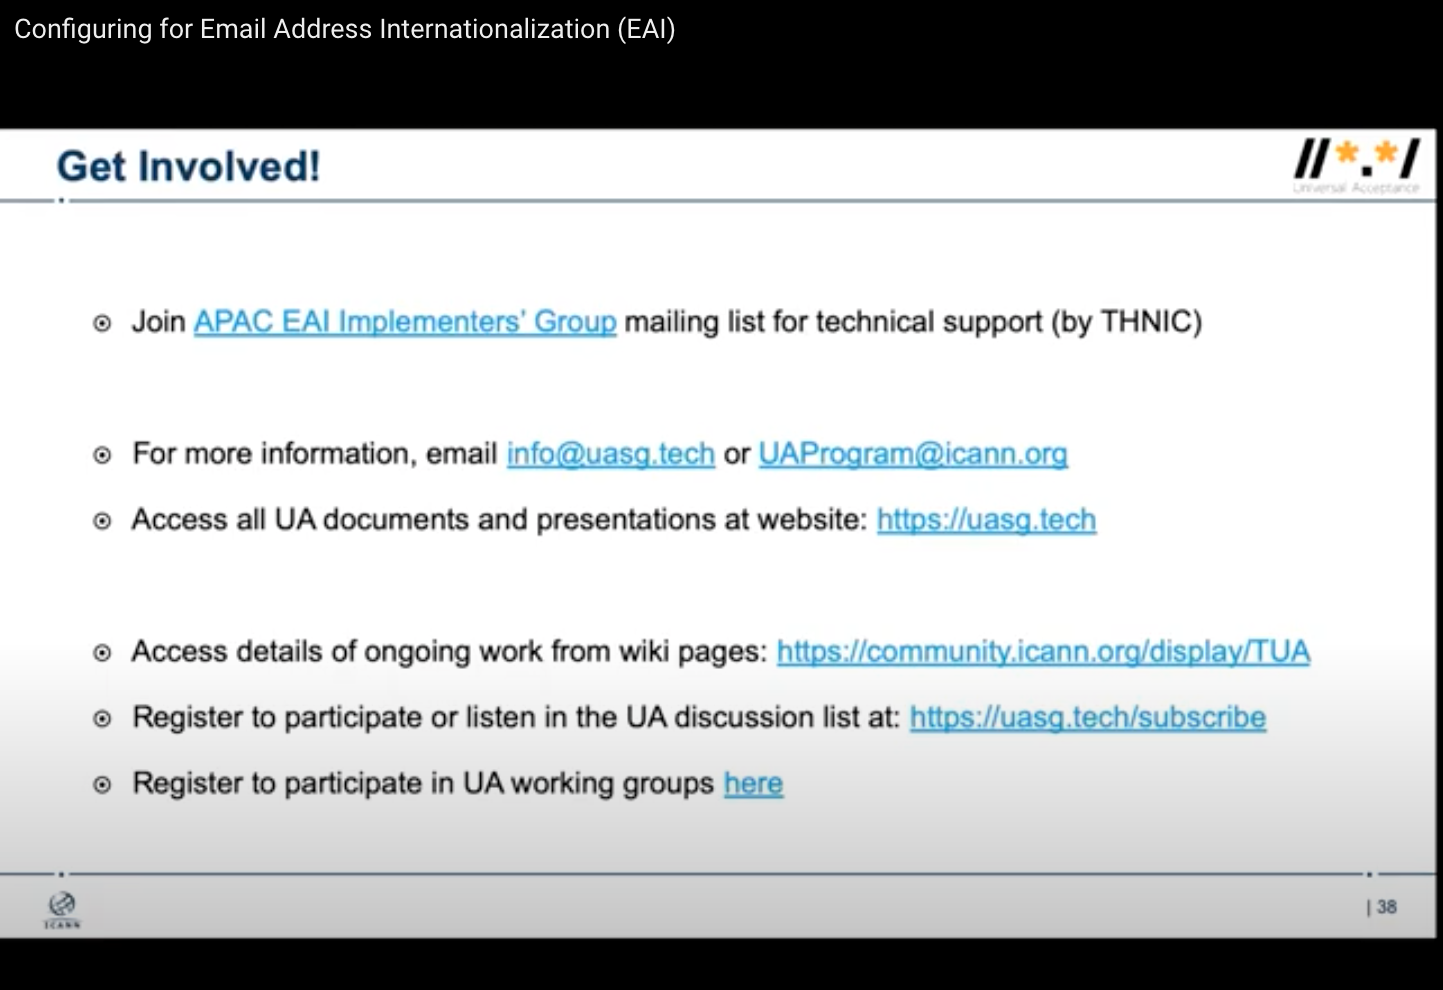 APAC-EAI-IG mailing list was promoted in ICANN-APTLD UA training